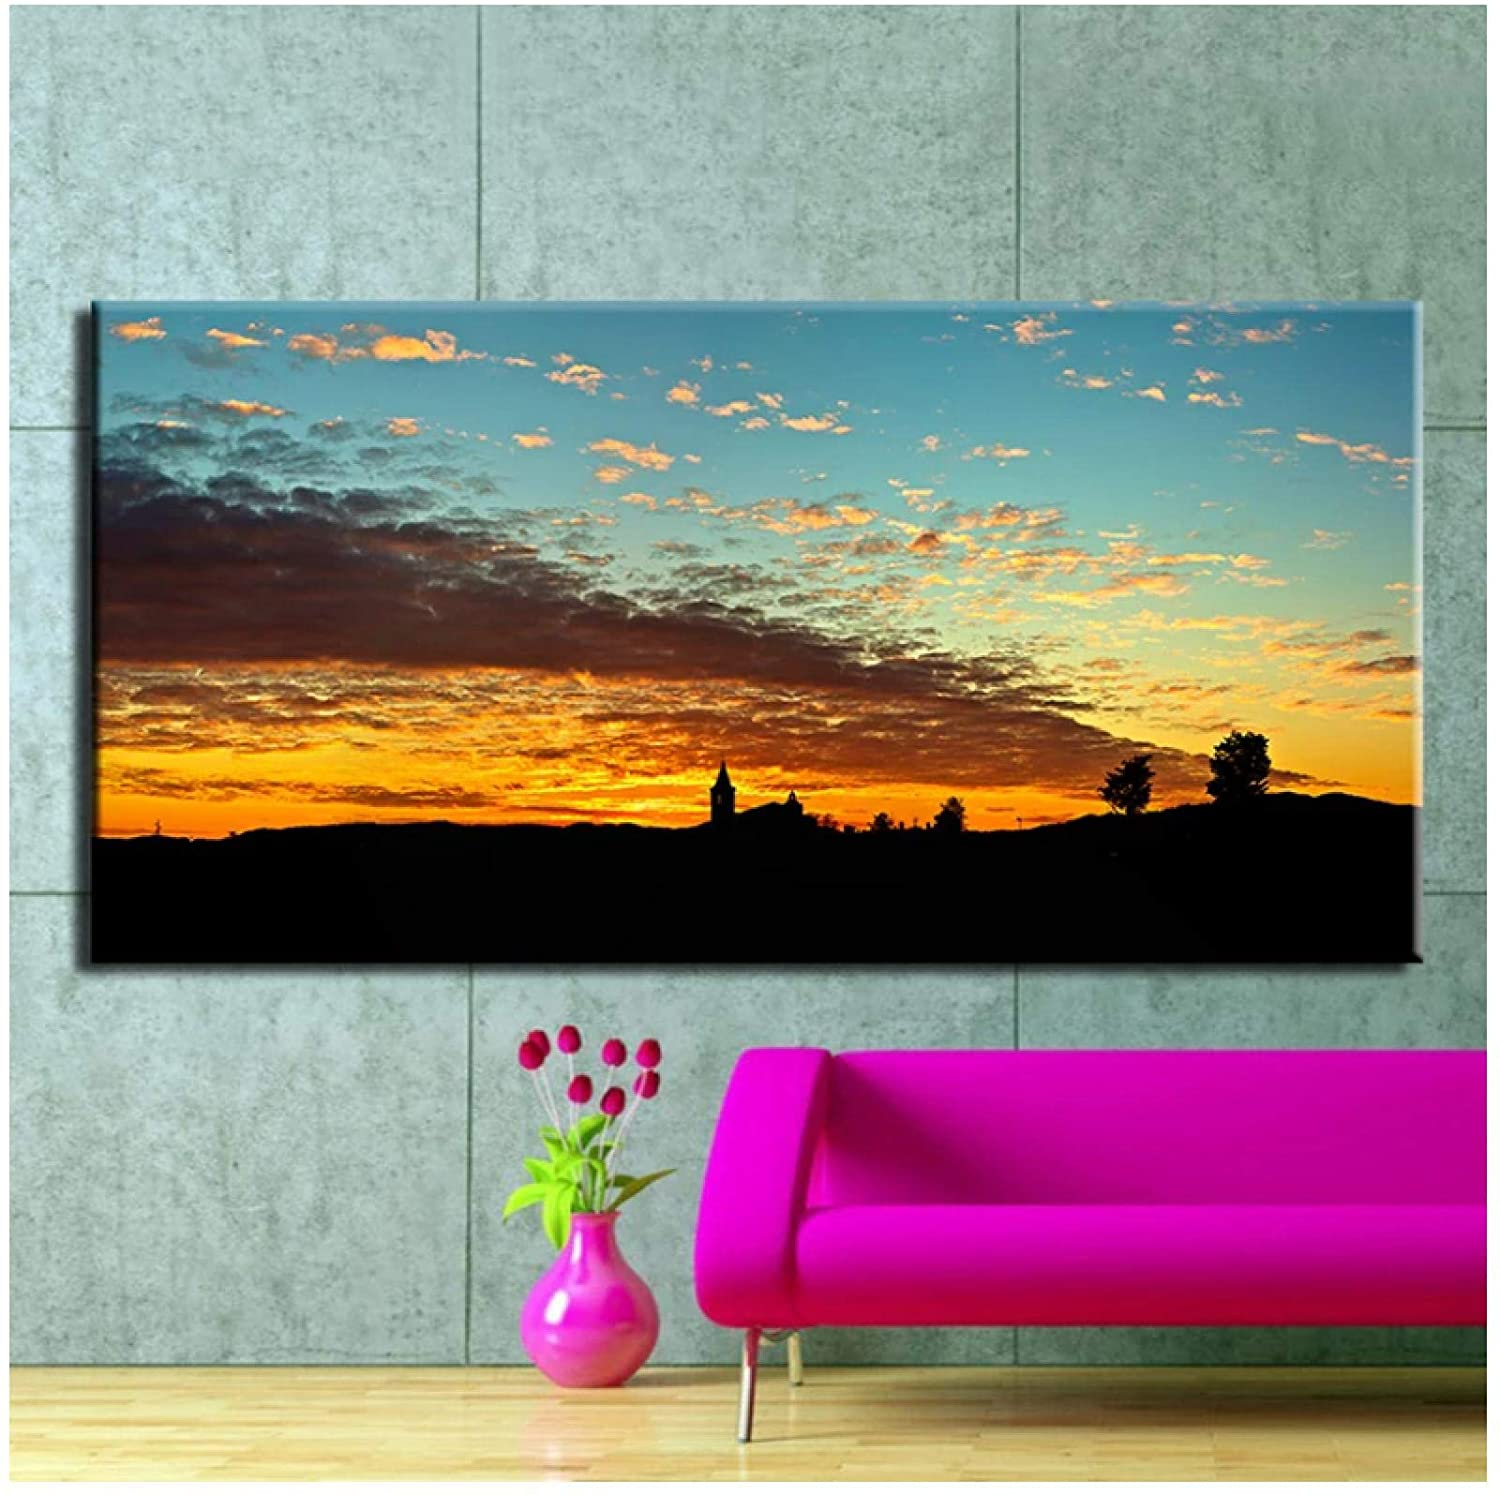 Wall Art ZXYFBH The Beautiful Landscape Oil Painting Print On Canvas Modern Wall Art Home Decor 11.8x15.7in(30x40cm) x1pcs No Frame